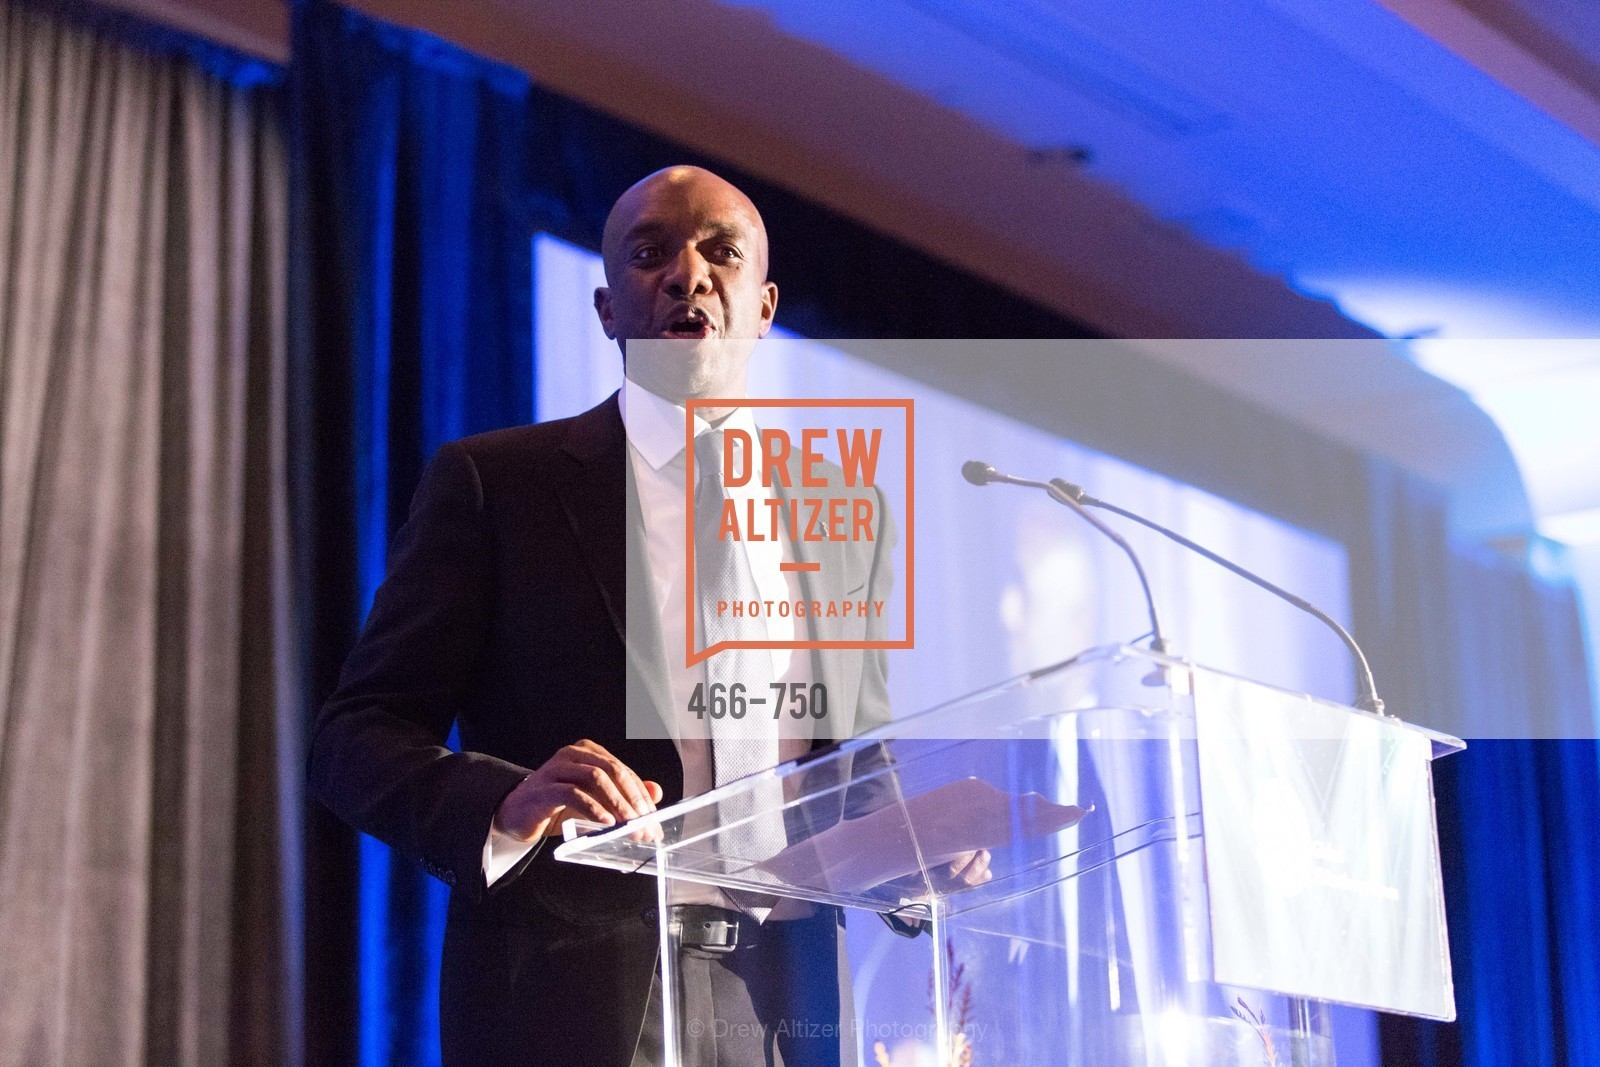 James Manyika, WORLD AFFAIRS COUNCIL Awards Dinner, US, May 26th, 2015,Drew Altizer, Drew Altizer Photography, full-service agency, private events, San Francisco photographer, photographer california